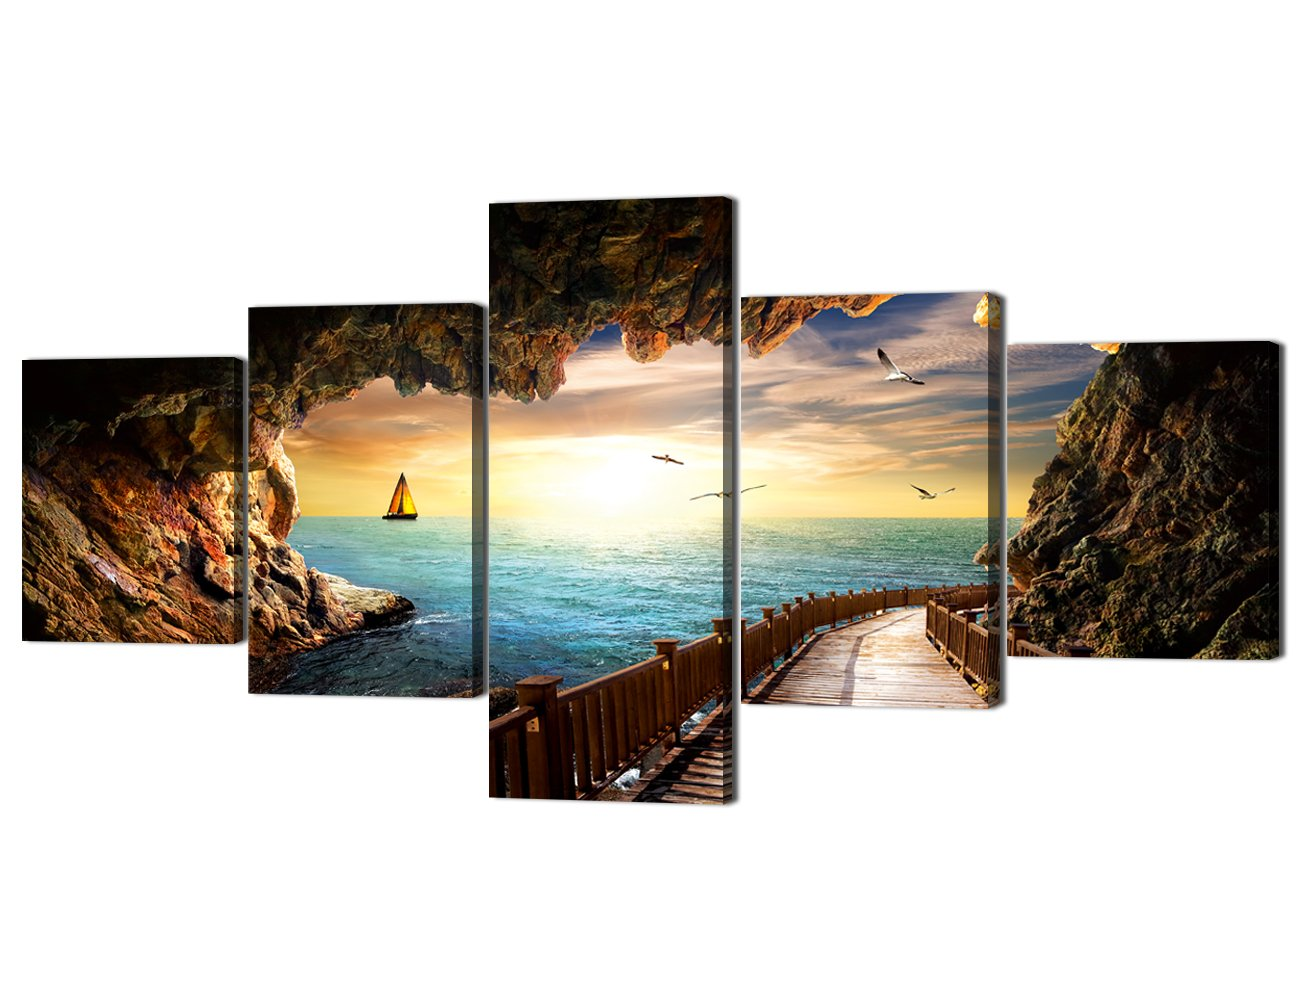 Ocean_10 Small Size Scene of Sea Waves Palm Tree Landscape Picture Modern Painting on Canvas 5 Piece Framed Wall Art for Living Room Bedroom Kitchen Home Decor Stretched Gallery Canvas Wrap Giclee Print (60''W x 32''H)